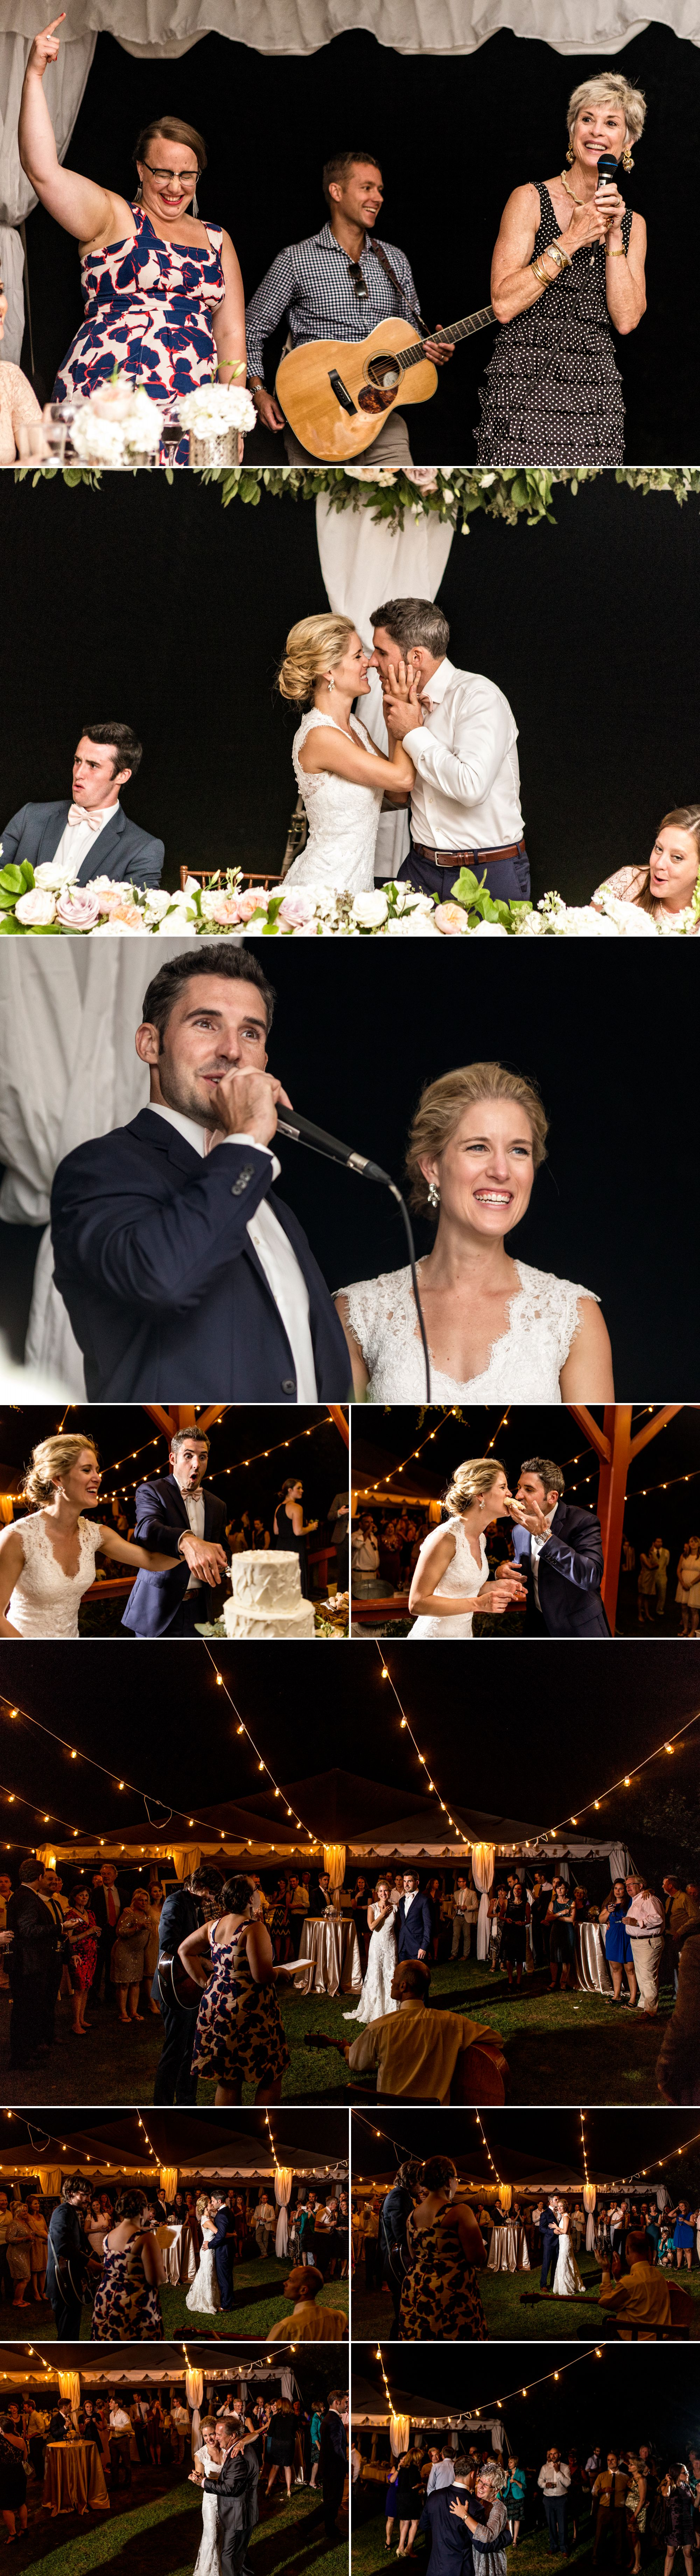 Outdoor speech and dancing photos at a cottage wedding